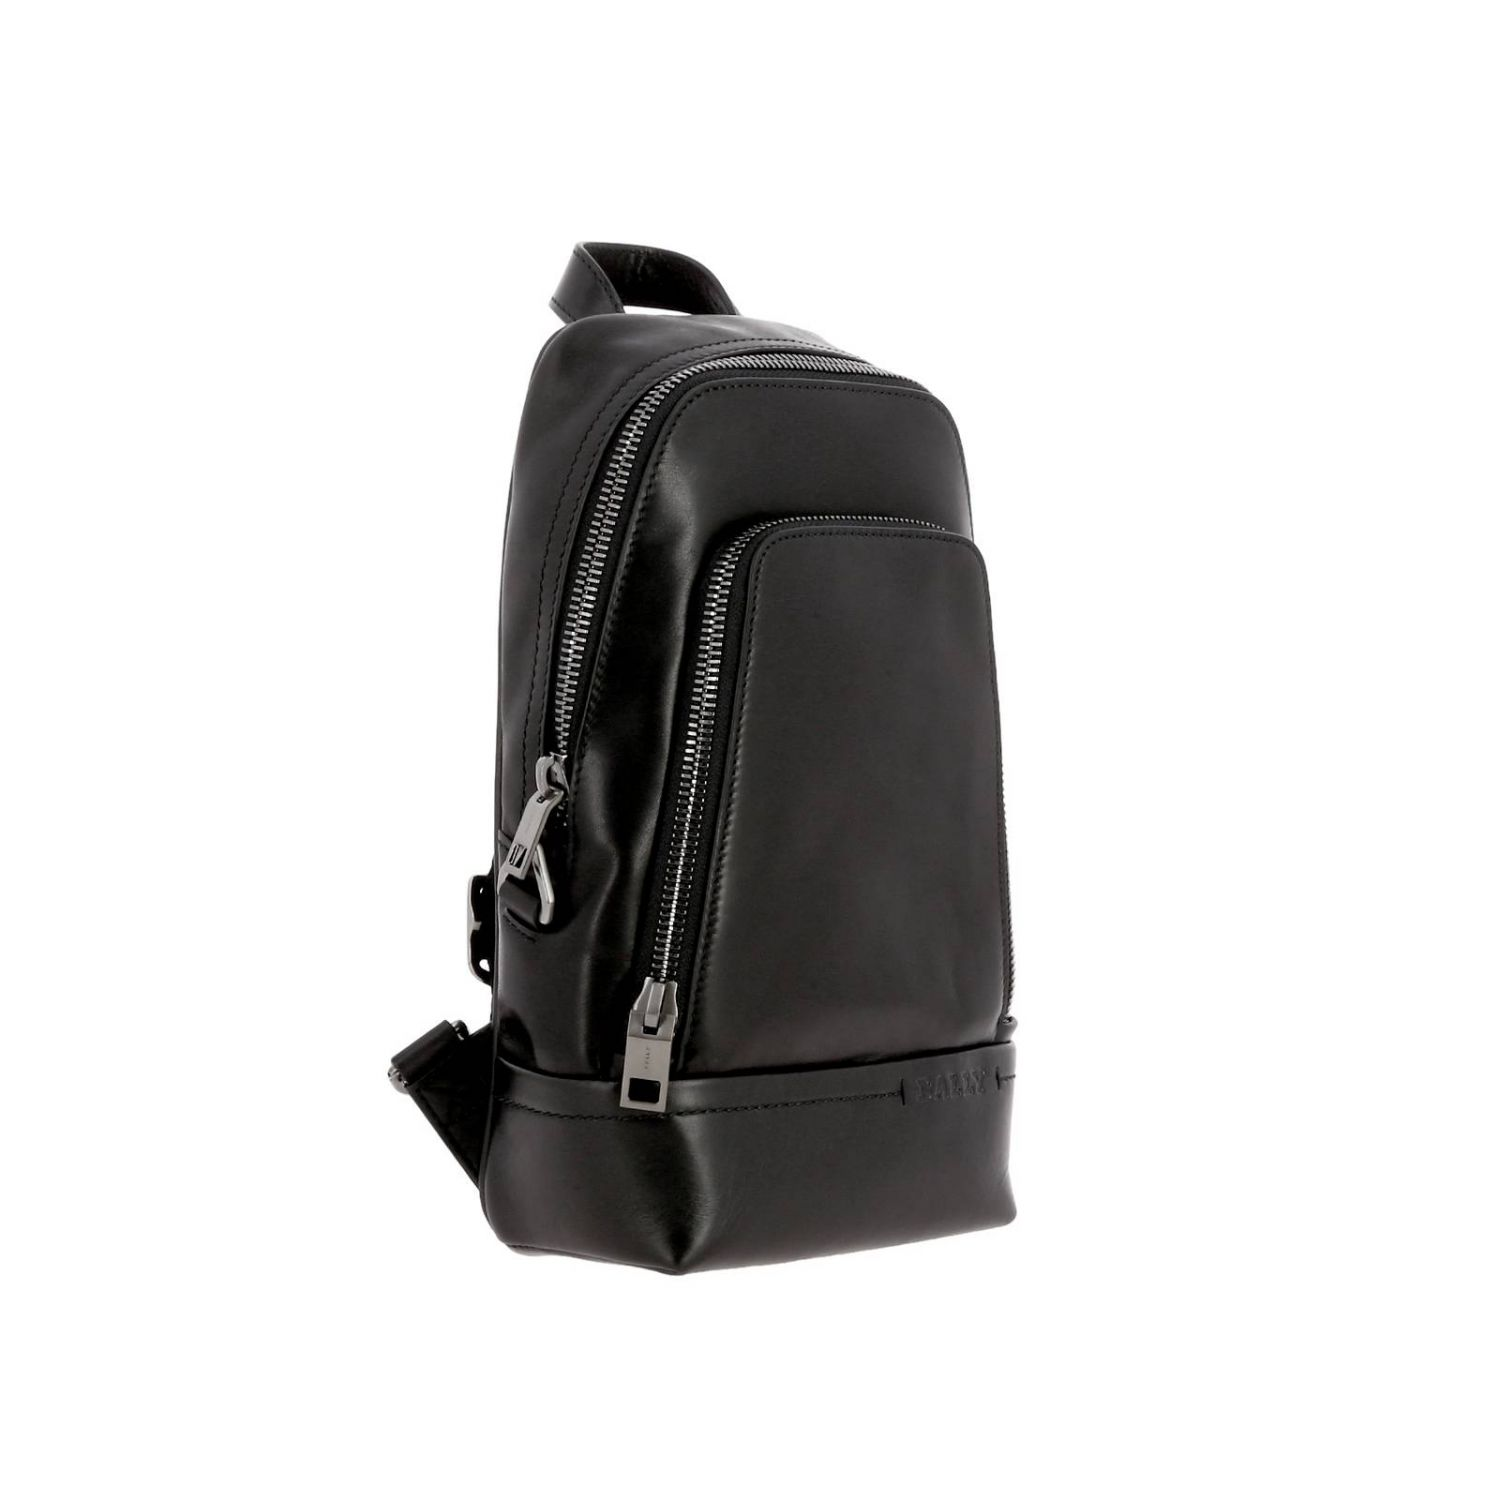 Thorp Bally one shoulder leather backpack with full zip black 3